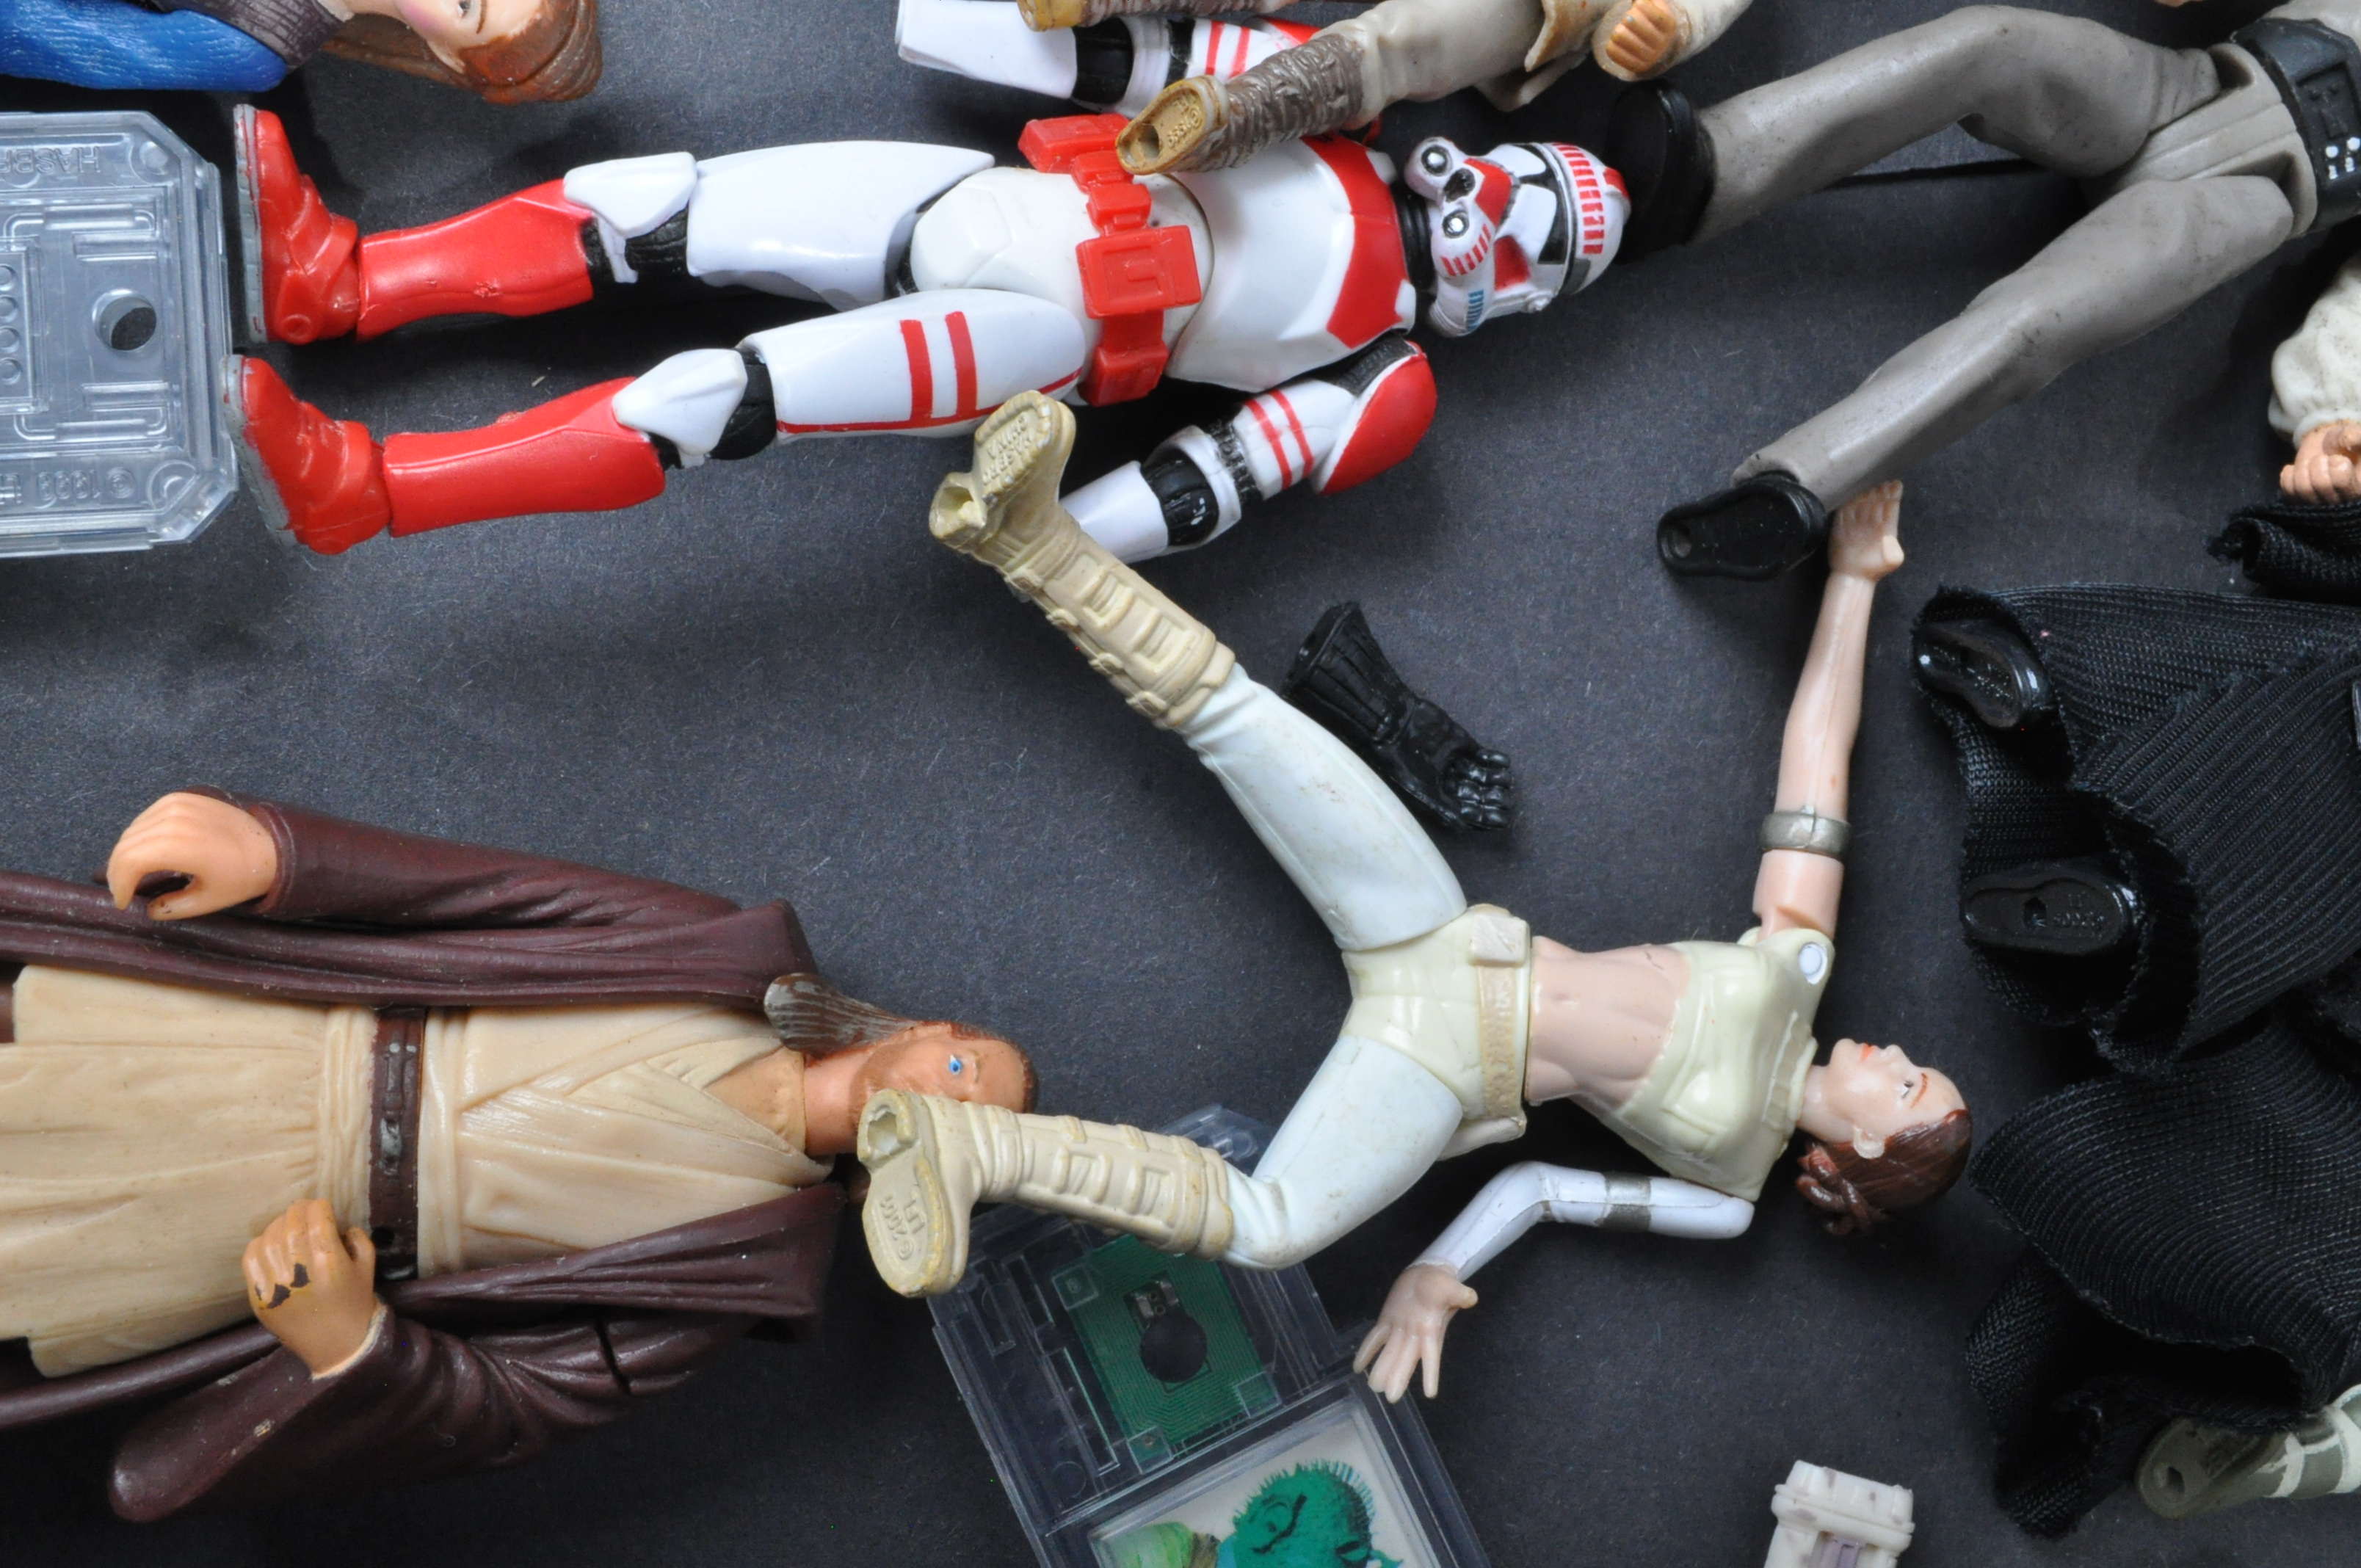 STAR WARS - LARGE COLLECTION KENNER / HASBRO CLONE WARS & OTHER FIGURES - Image 9 of 10